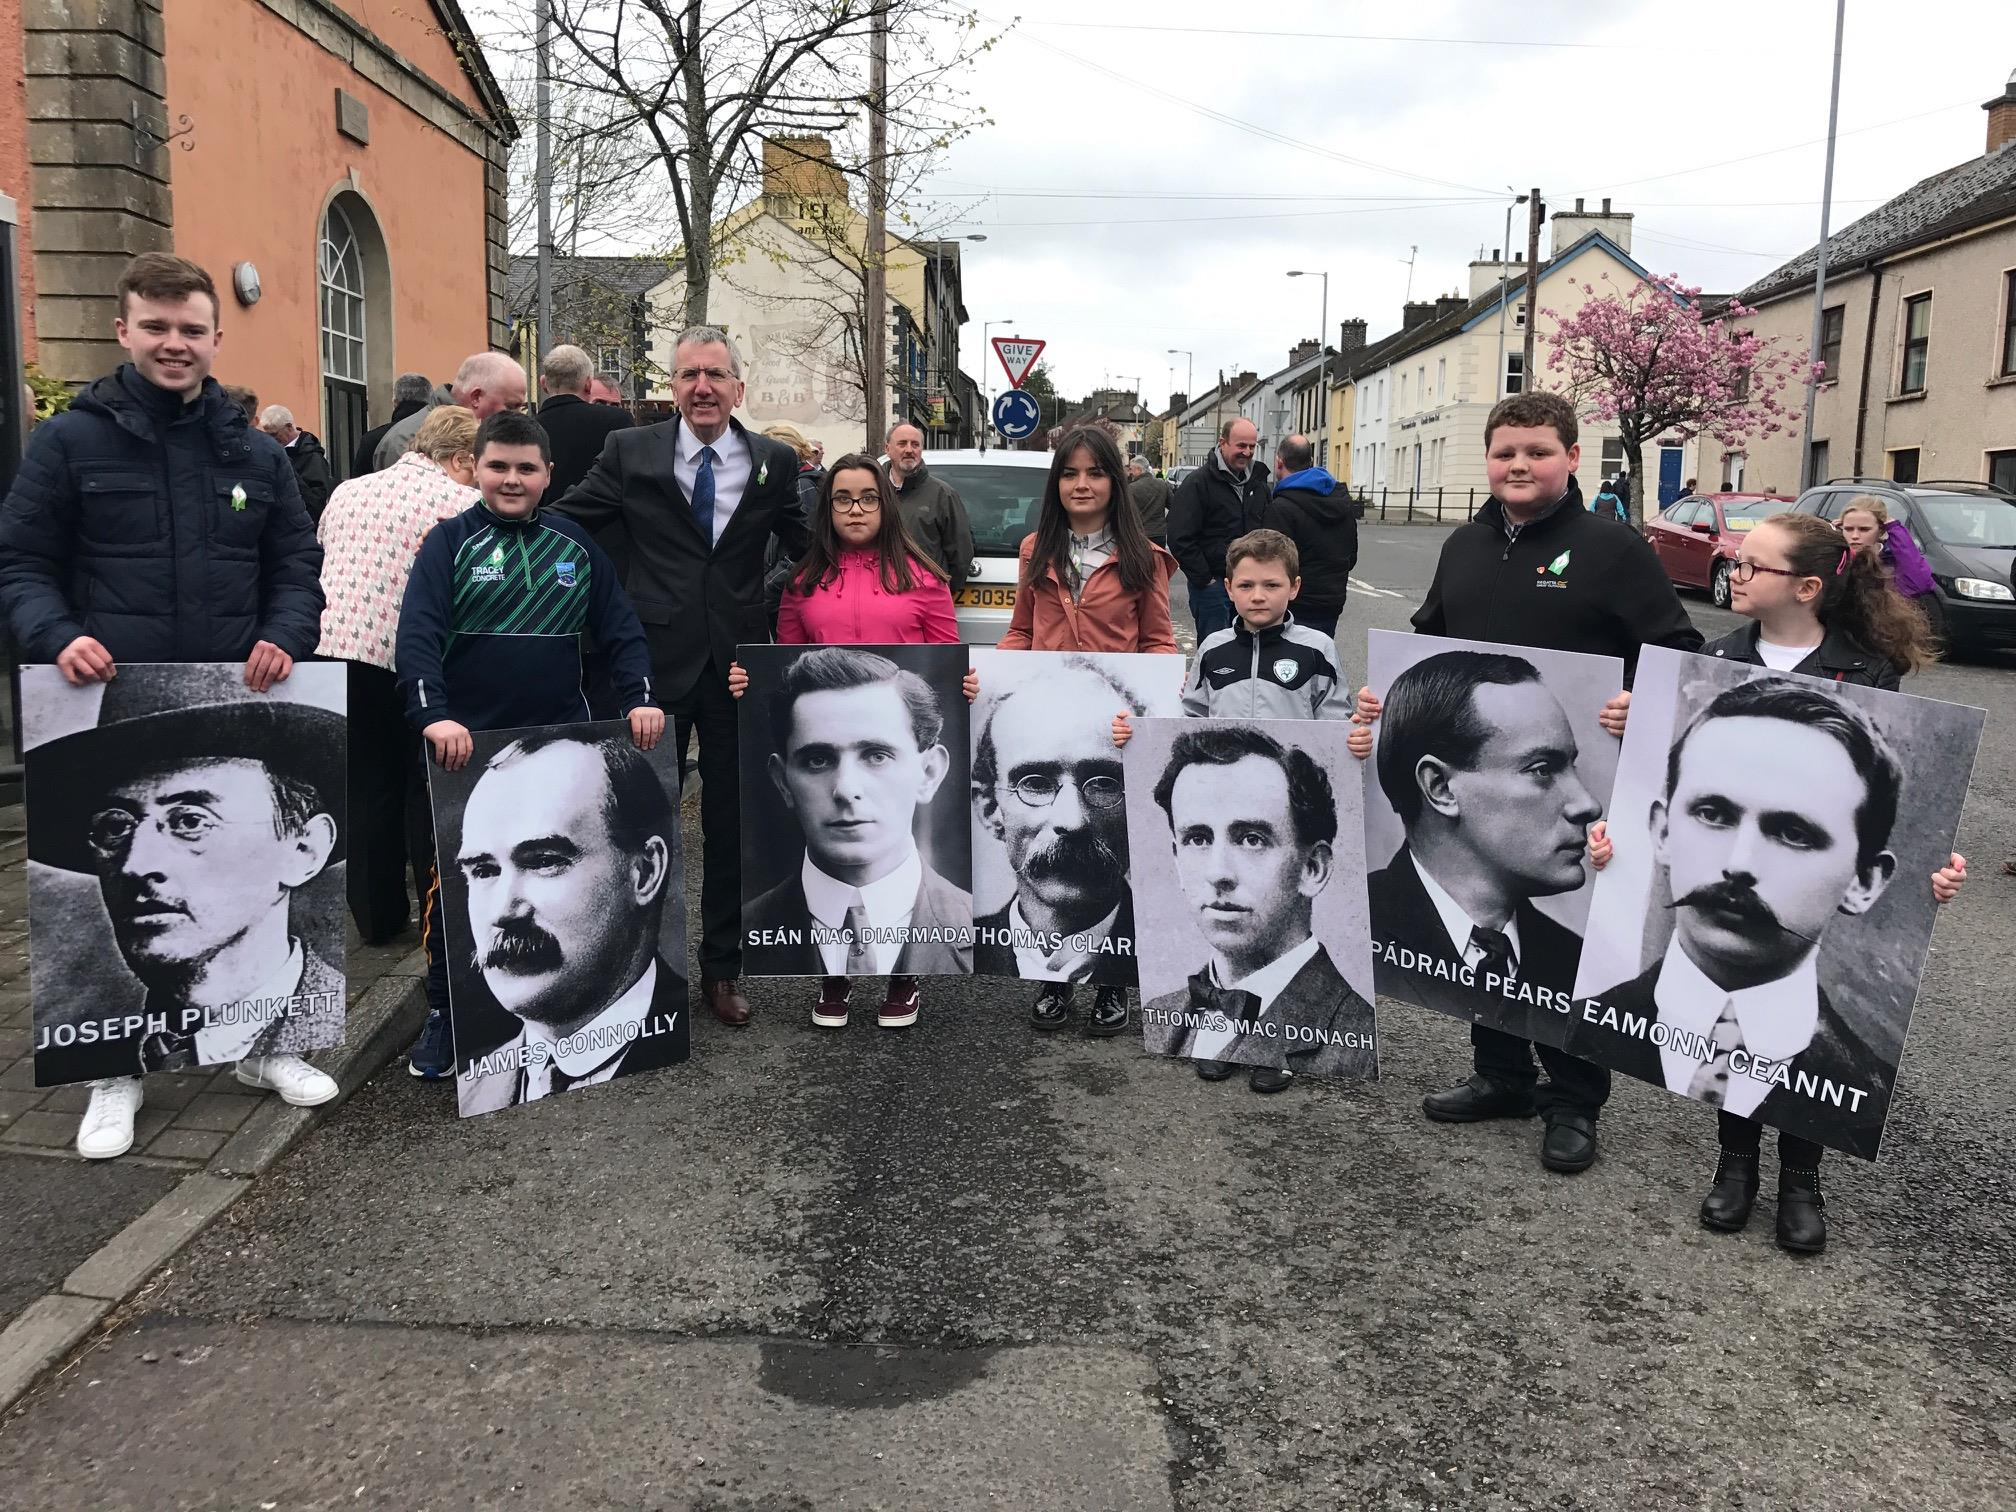 ACHADH GÉ: I was delighted to be with the patriot people of Fermanagh in Newtownbutler on Sunday to mark the 1916 Easter Rising and pay tribute to all those who gave their lives for Ireland. These seven youngsters were the pride of Achadh Gé as they carried portraits of the seven signatories of the Proclamation through the town.